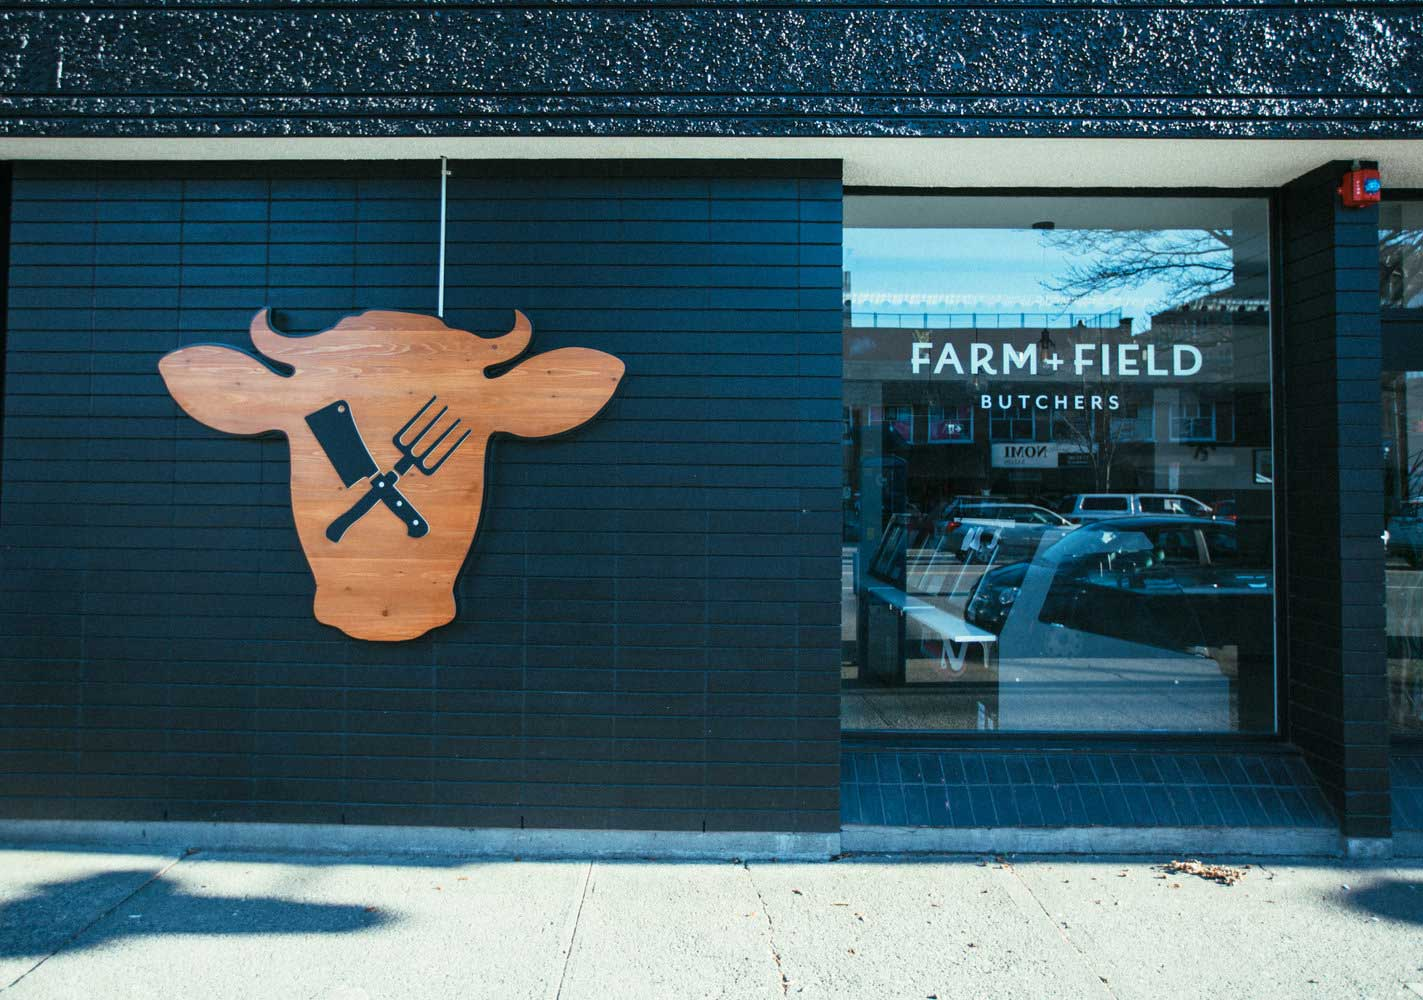 Farm + Field Butchers